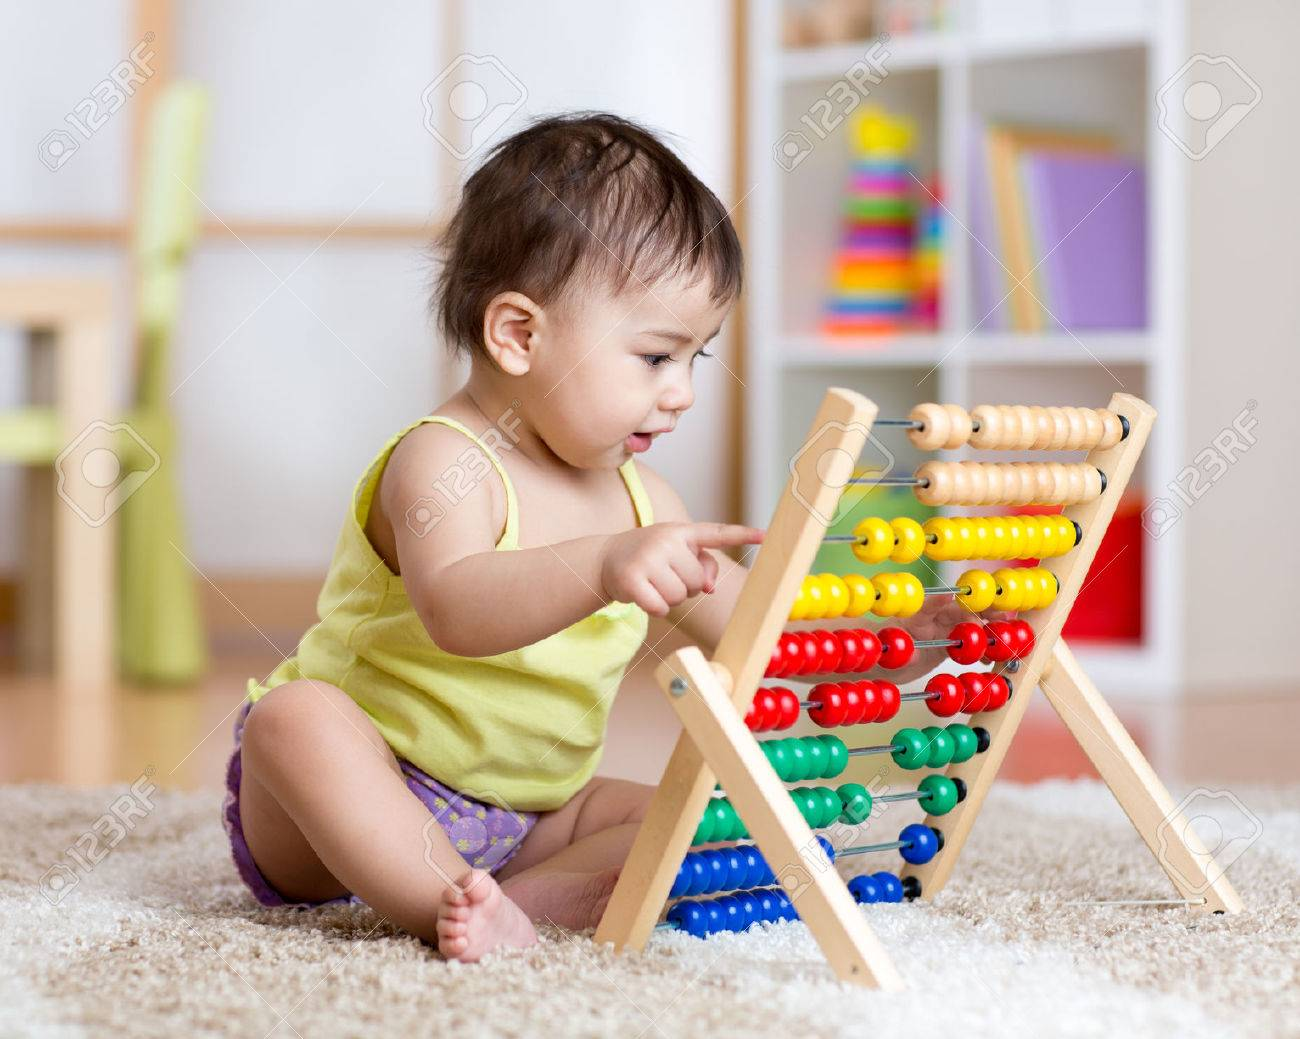 Cute baby boy playing with counter toy Stock Photo - 52545411